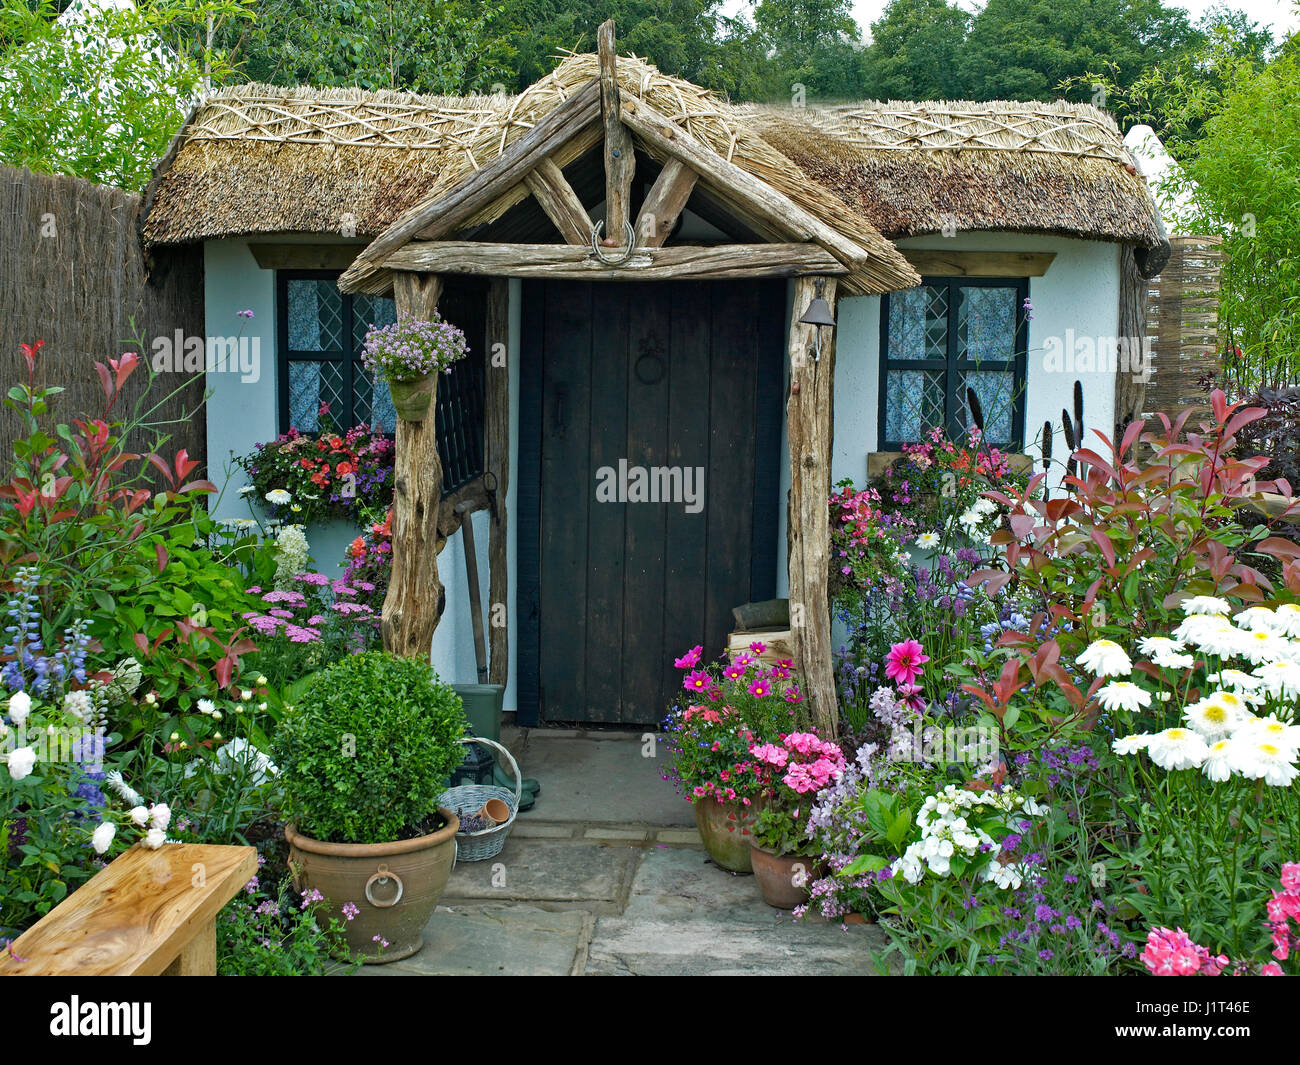 A traditional thatched cottage and garden to creat a calming and relaxing space - Stock Image